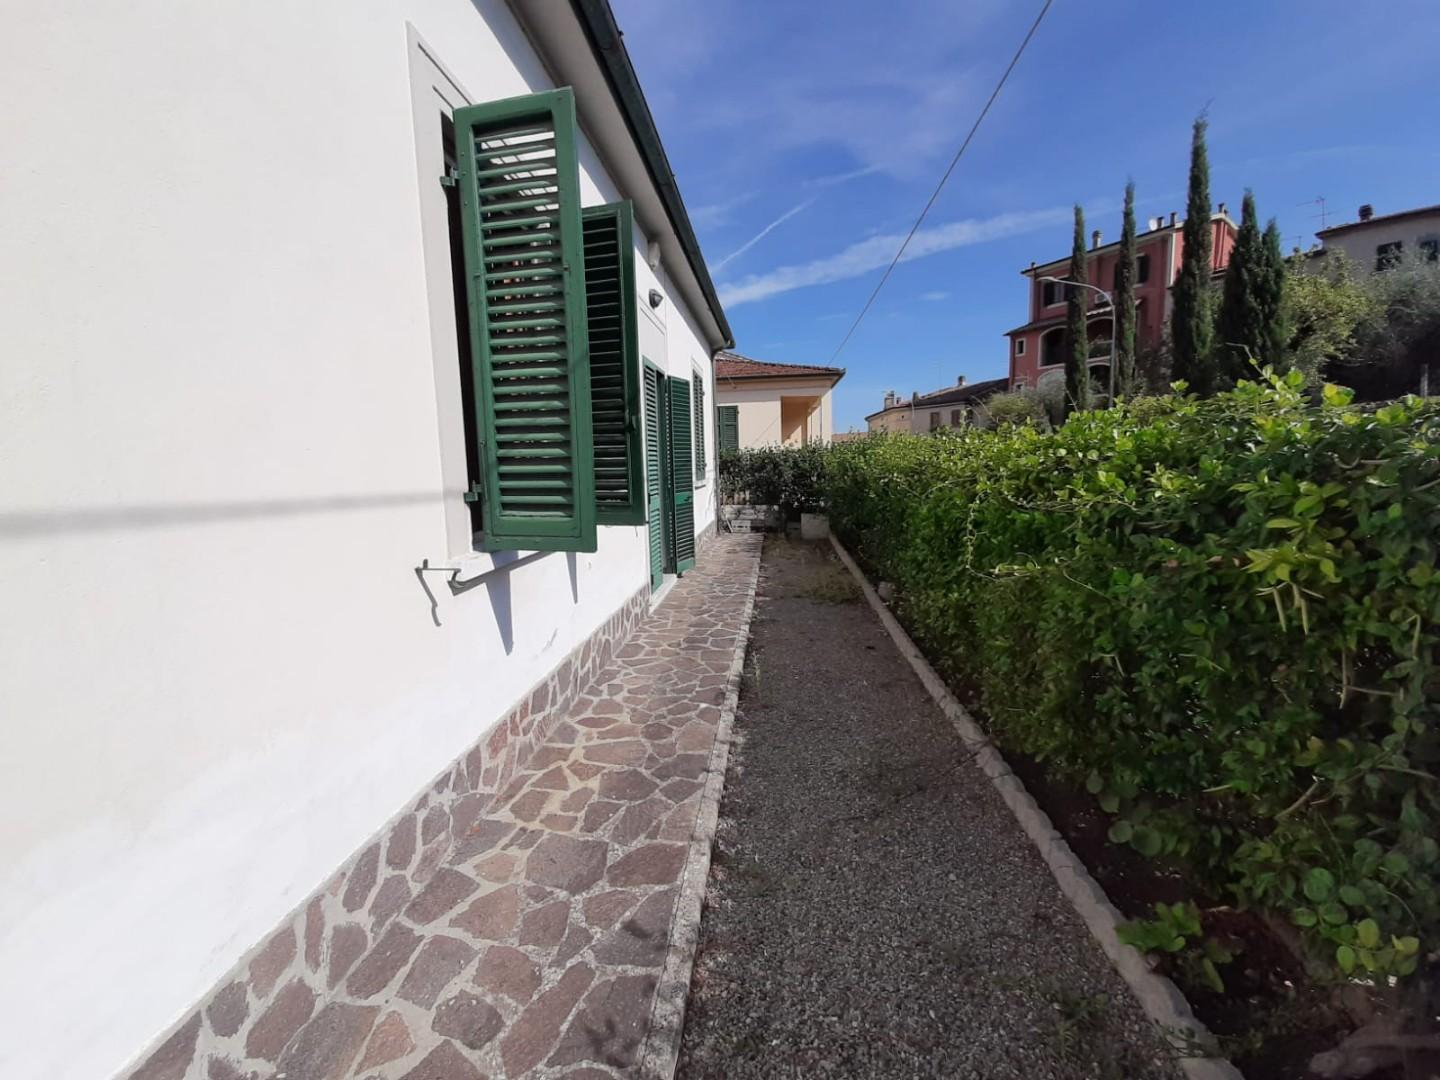 Single-family house for sale in Peccioli (PI)